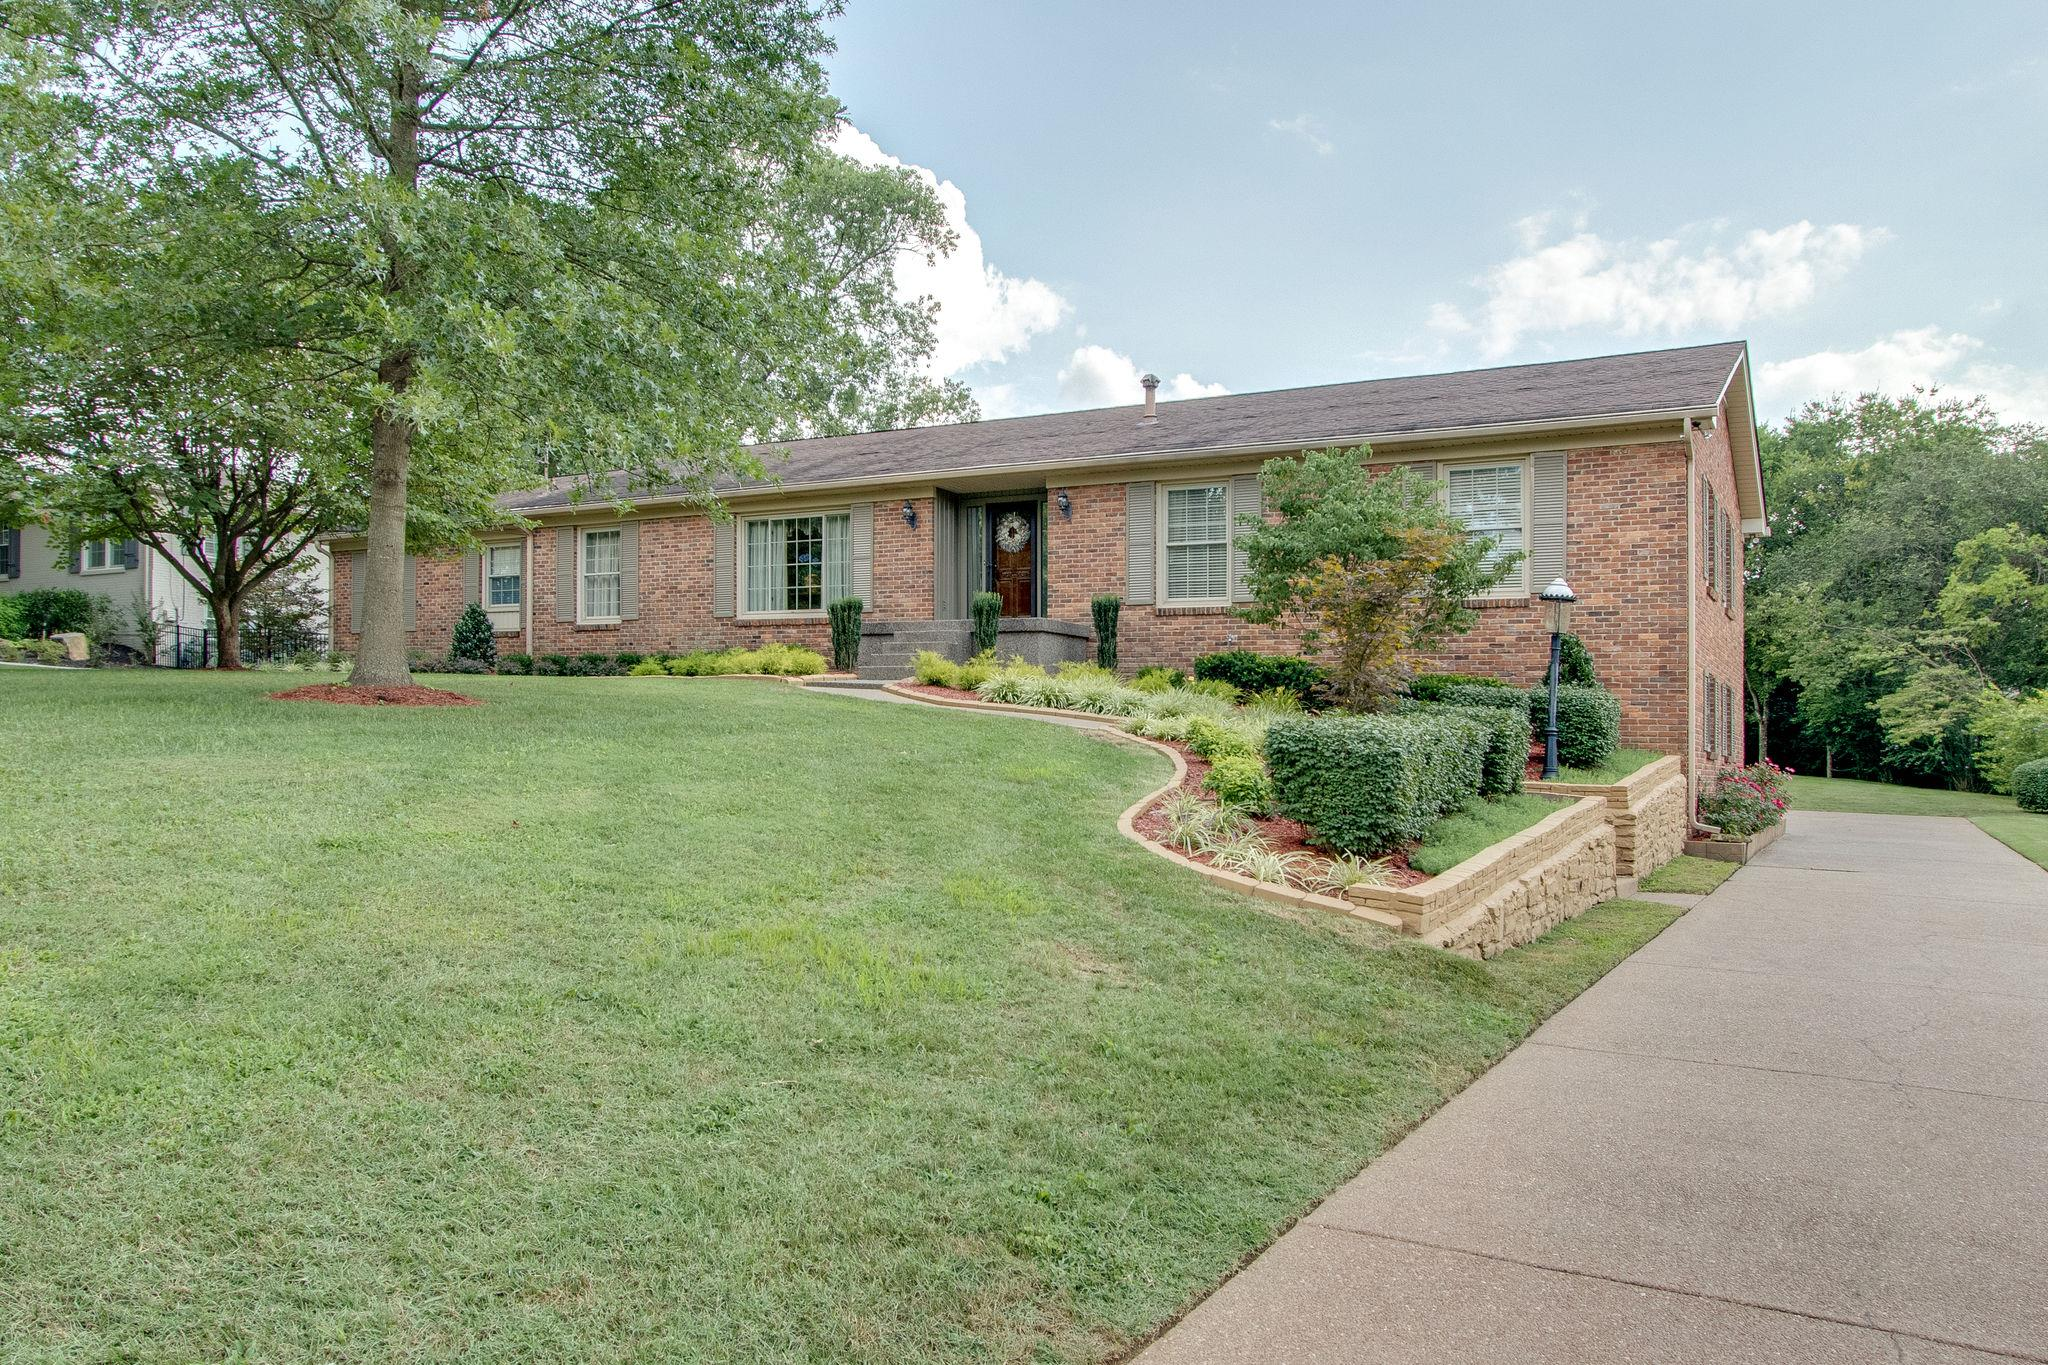 212 Rolling Mill Rd, Old Hickory, TN 37138 - Old Hickory, TN real estate listing